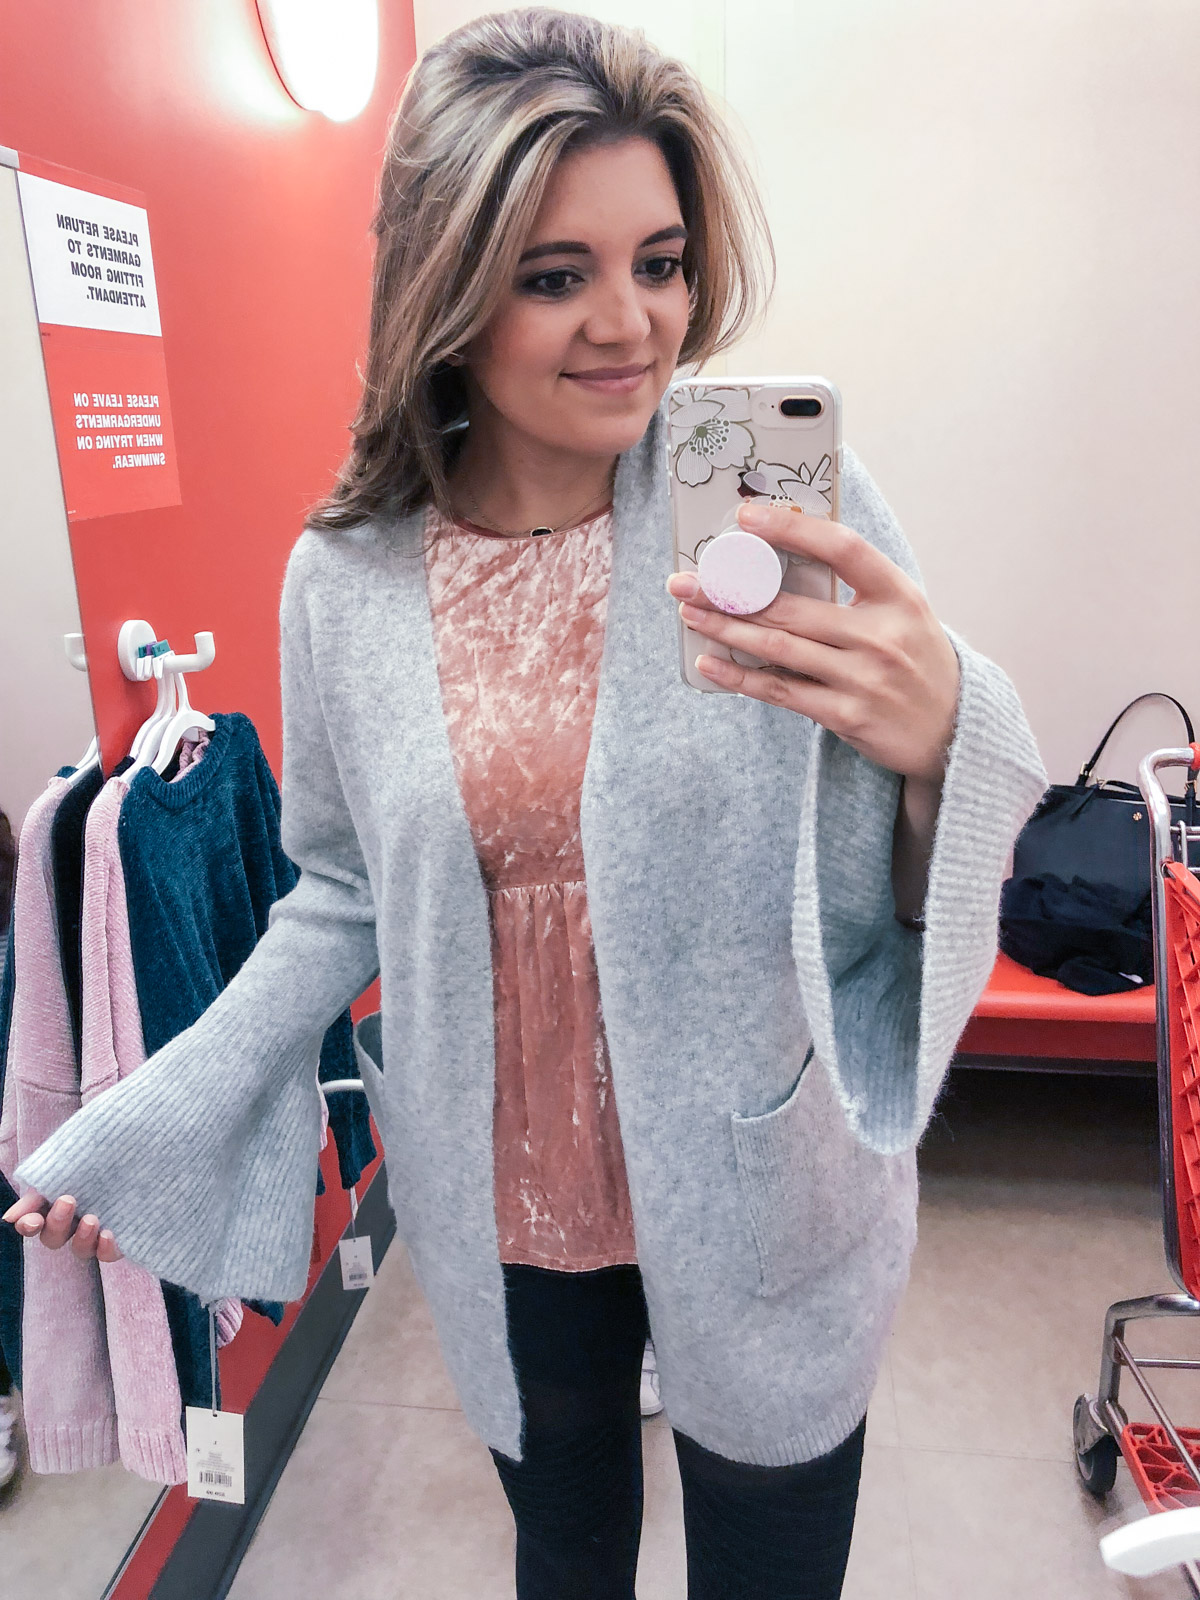 target clothing reviews - target dressing room reviews | For more dressing room reviews, check out bylaurenm.com!